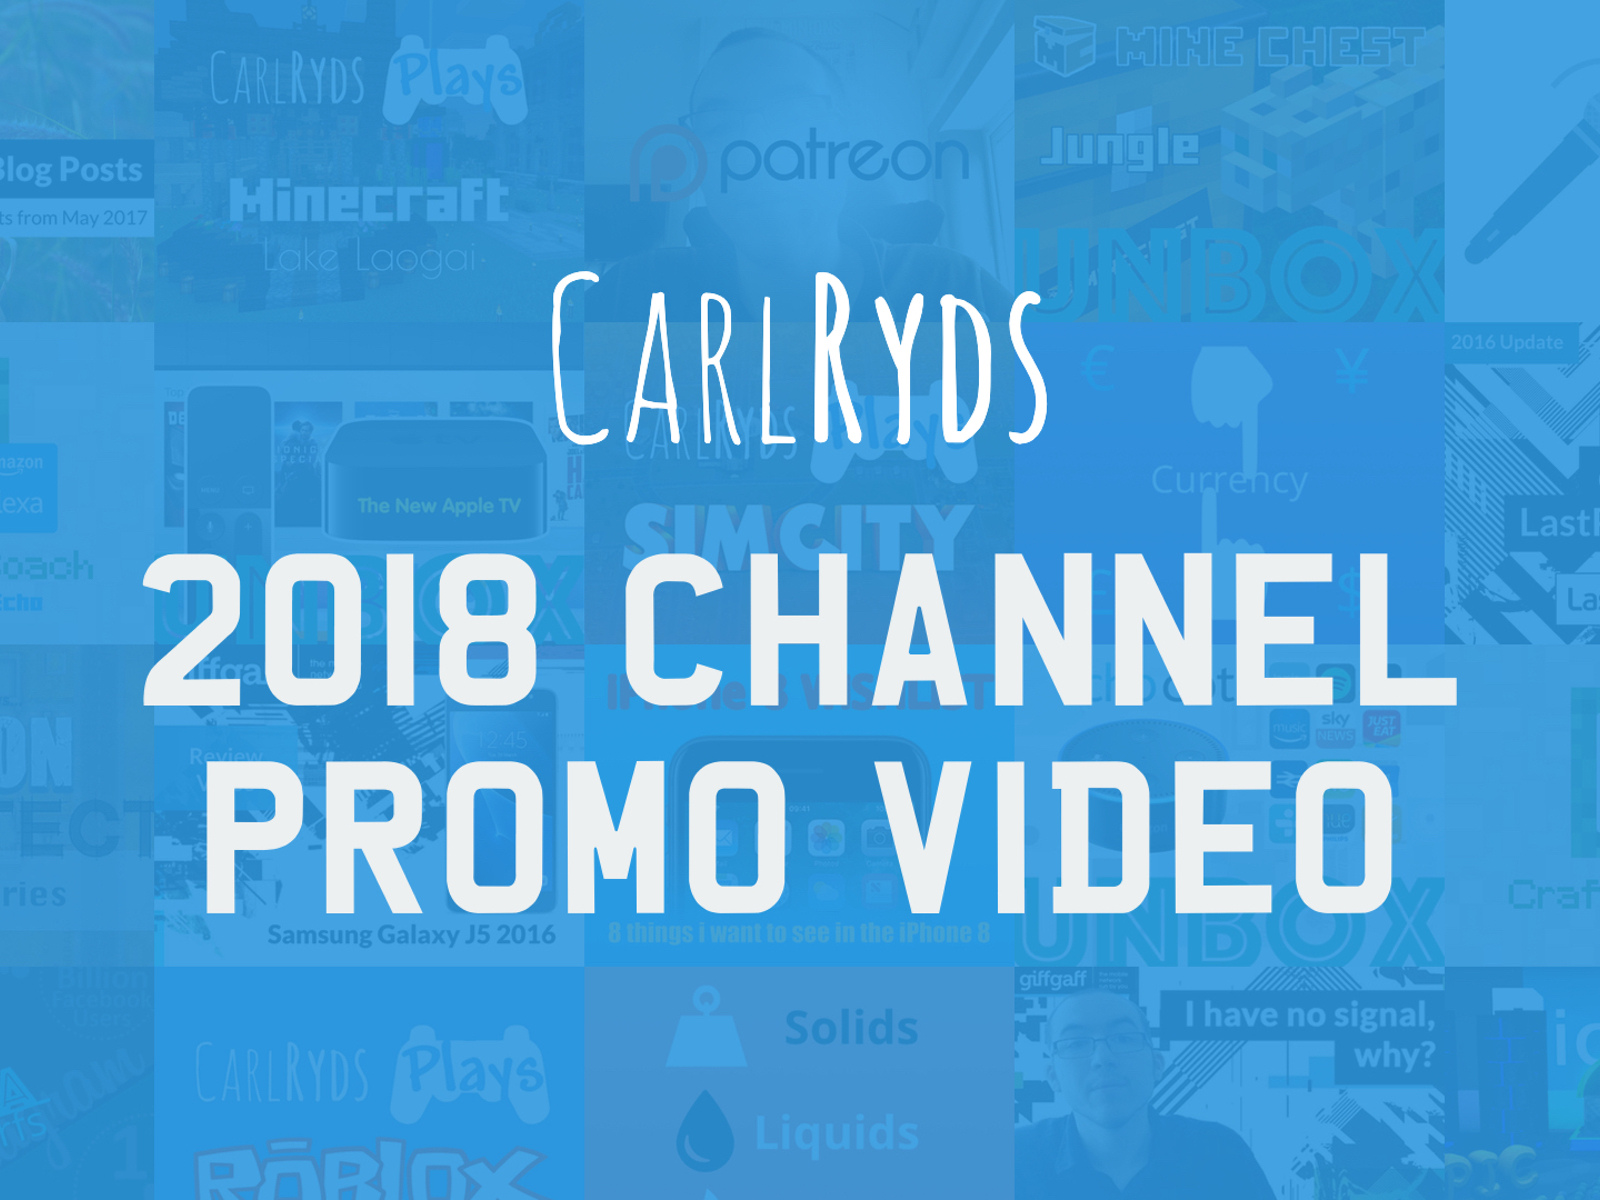 2018 Channel Promo Video